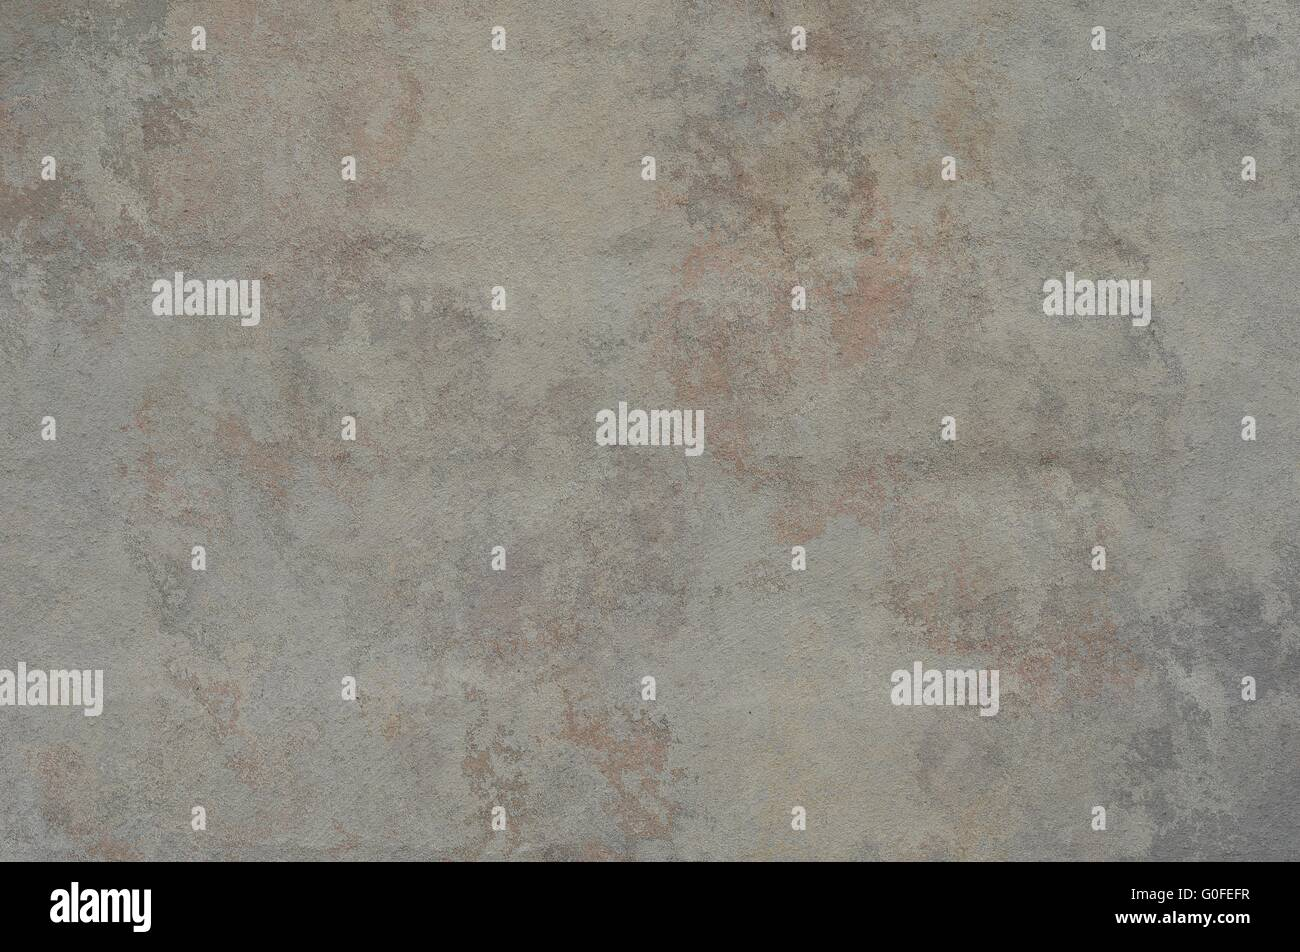 rough surface of a wall - Stock Image